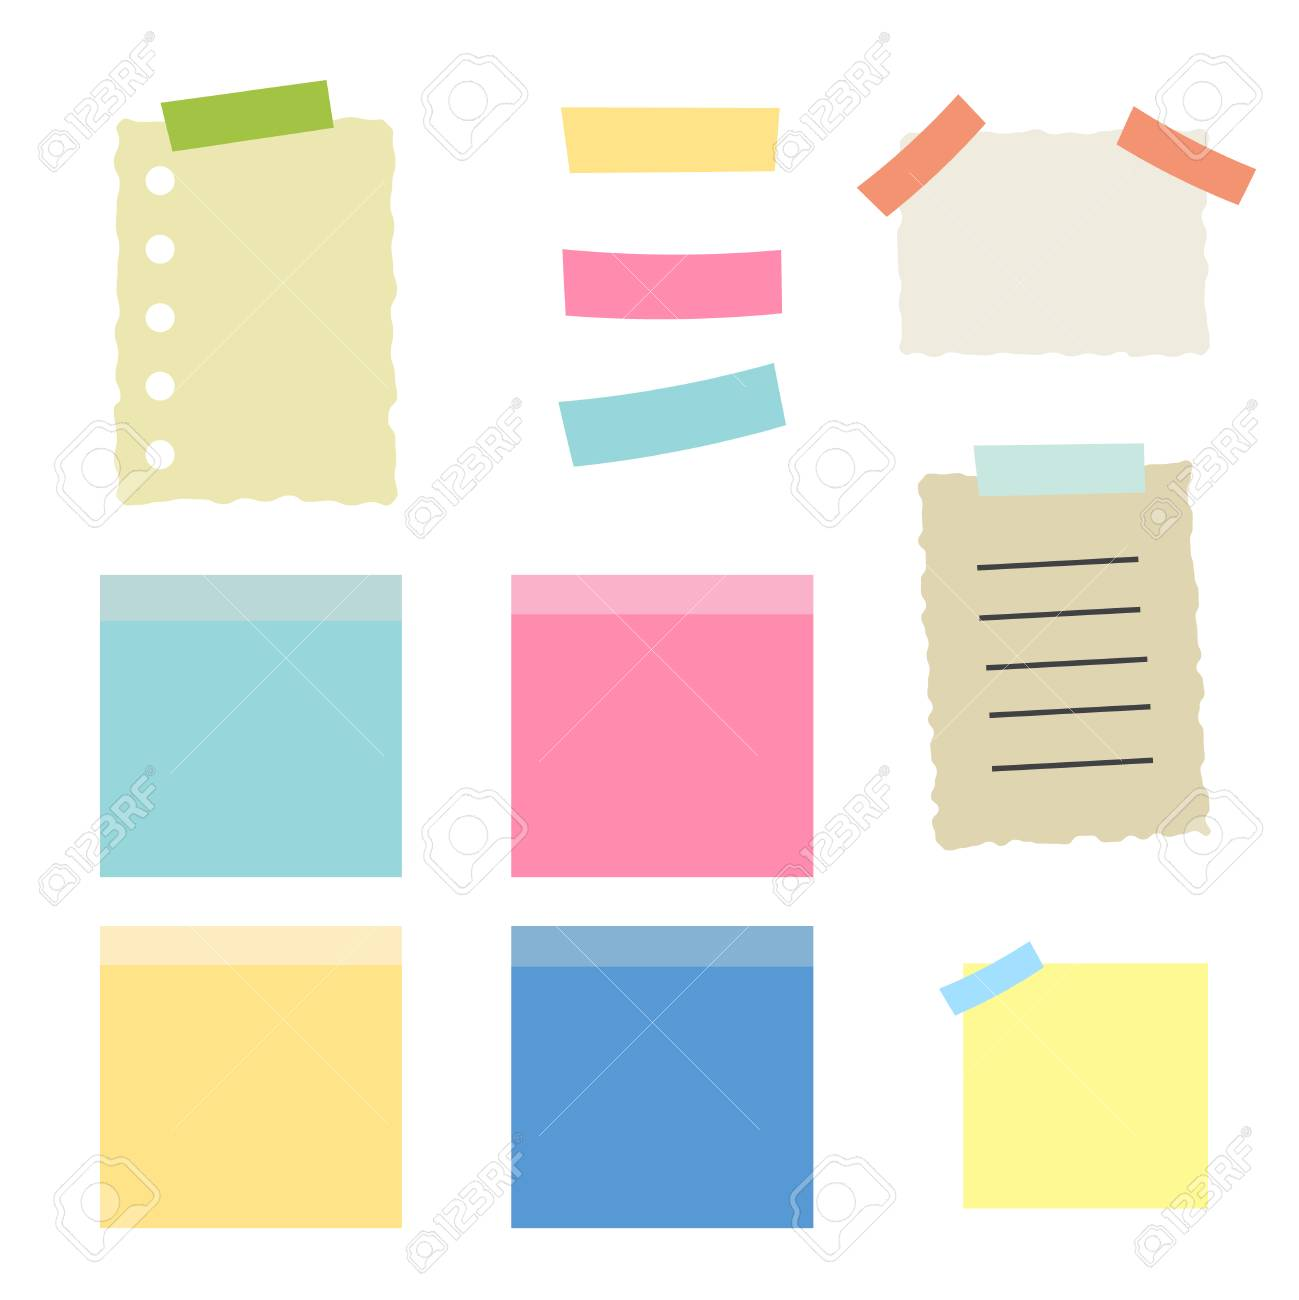 Colored sheets of note papers vector illustration. Multicolor post it notes isolated - 124933529